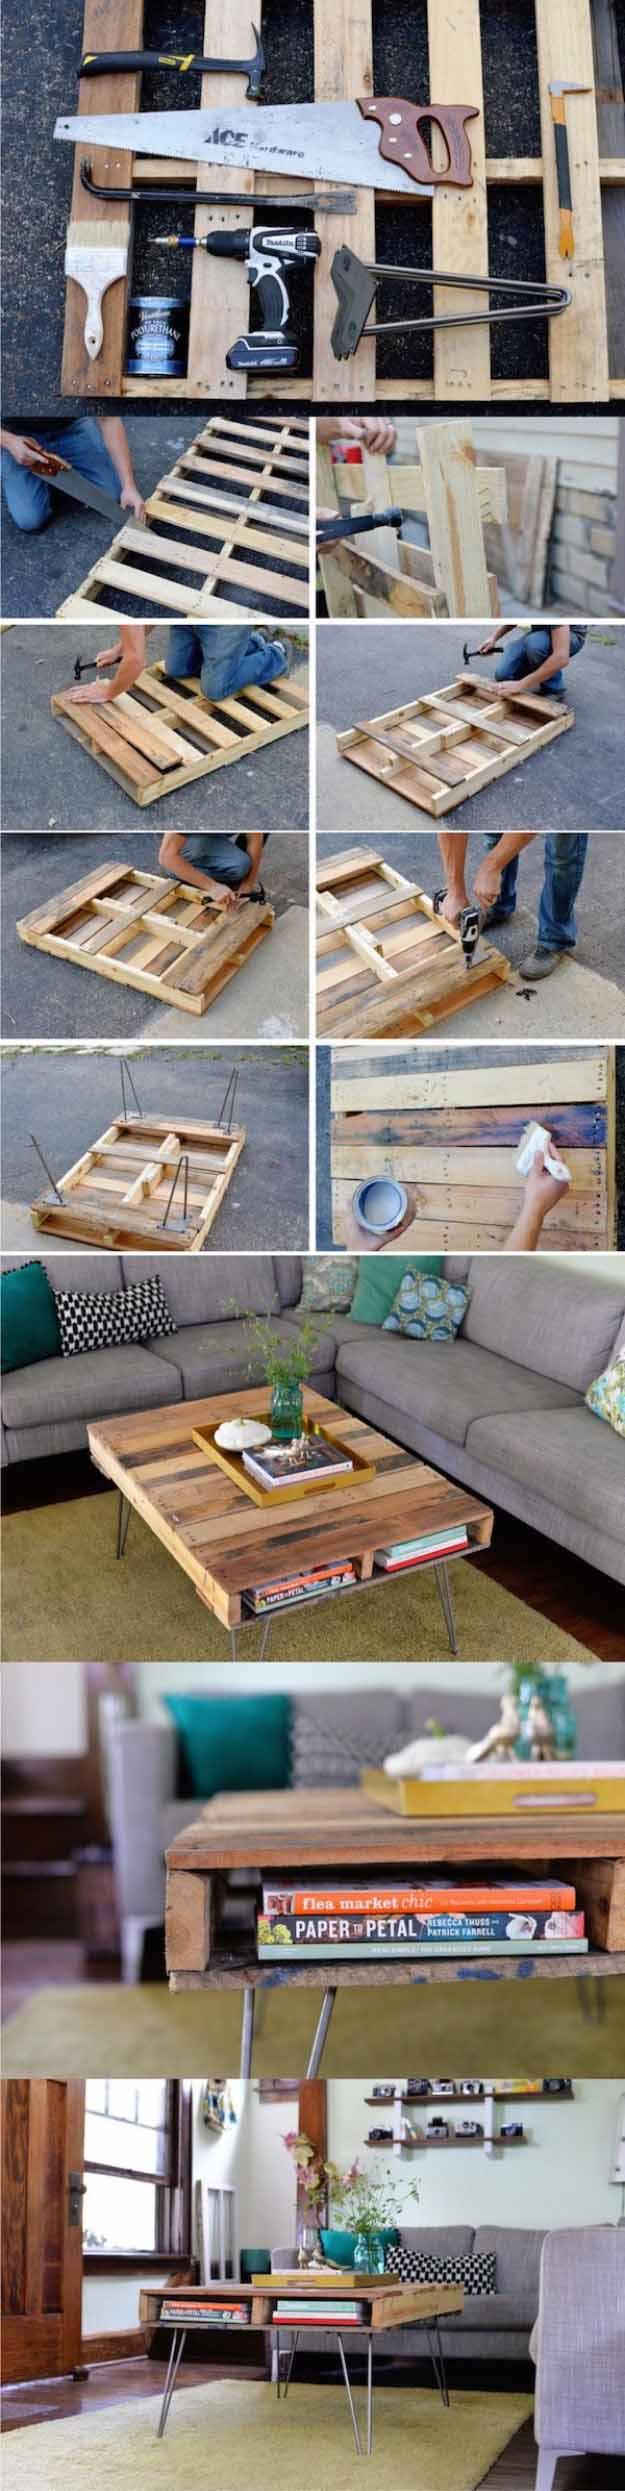 16 diy coffee table projects diy joy - Fabriquer une table basse en palette ...